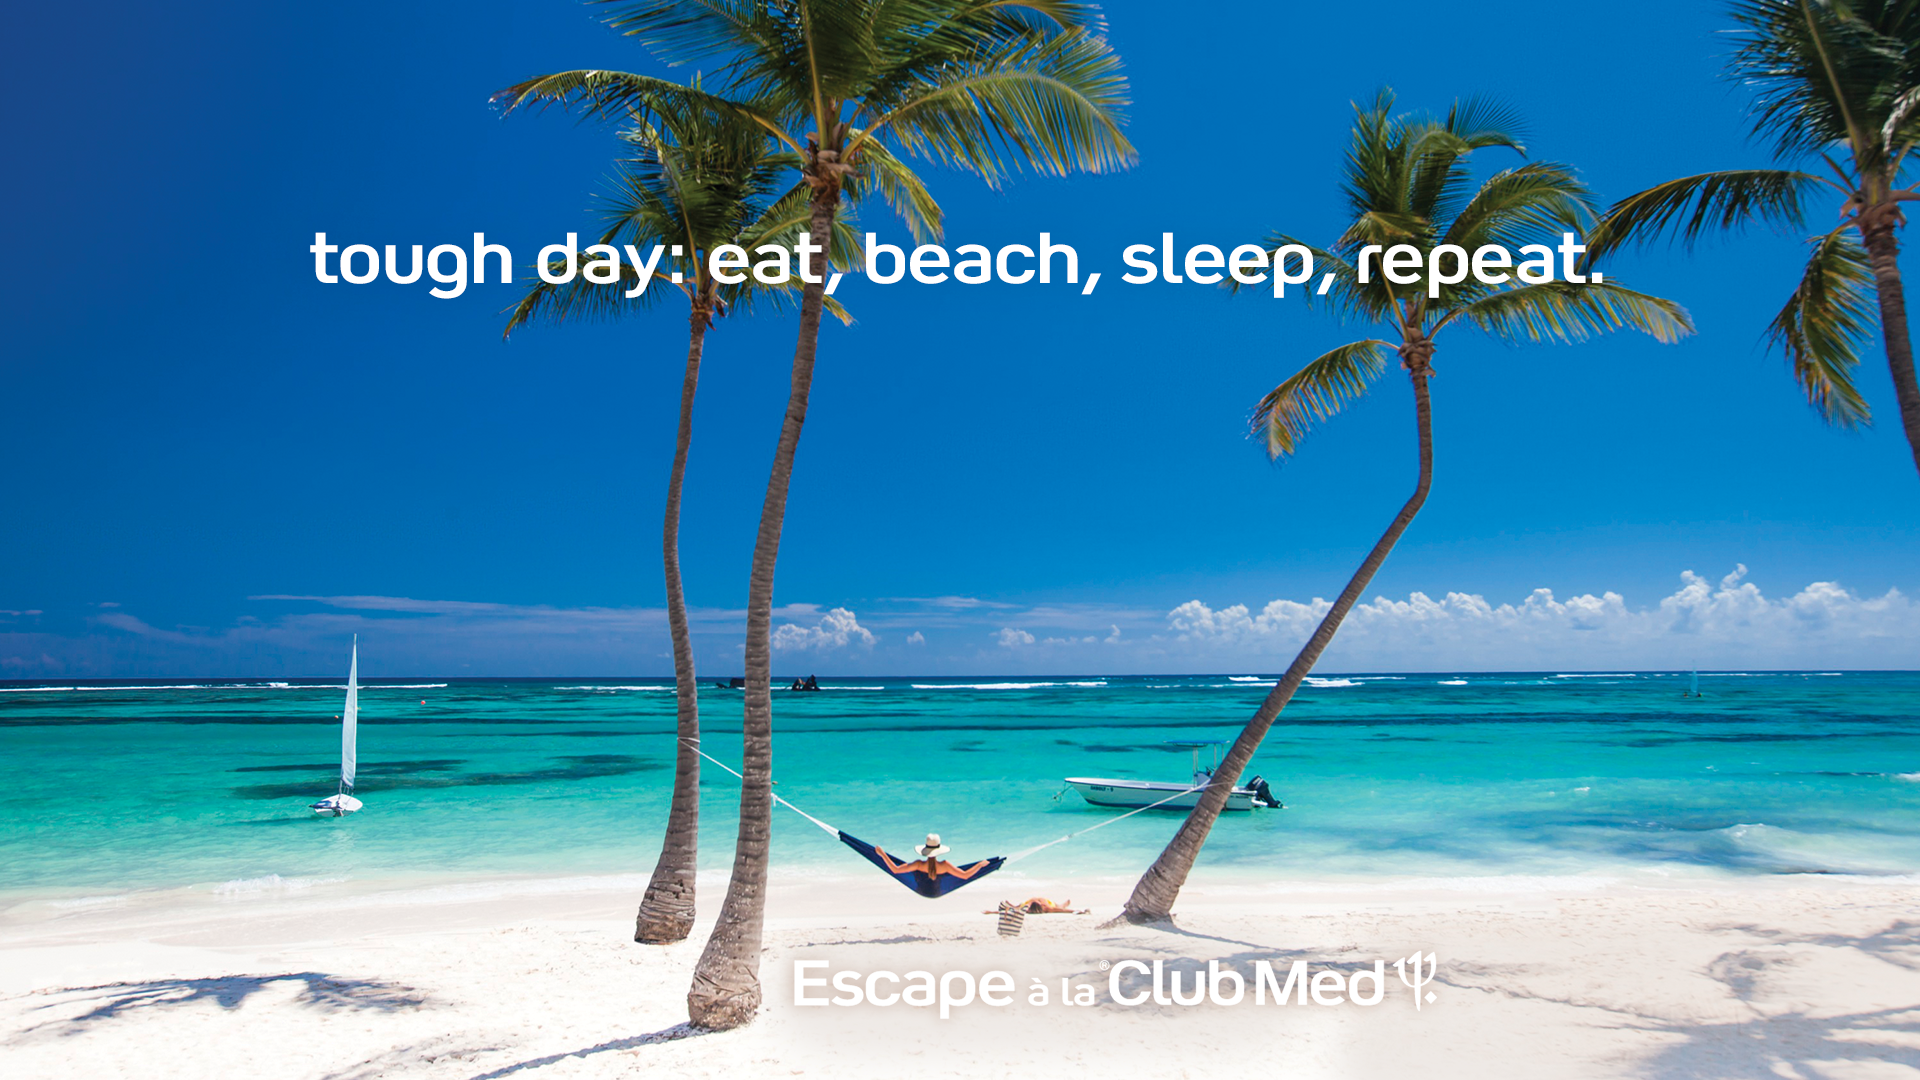 club med screensavers | download yours today!